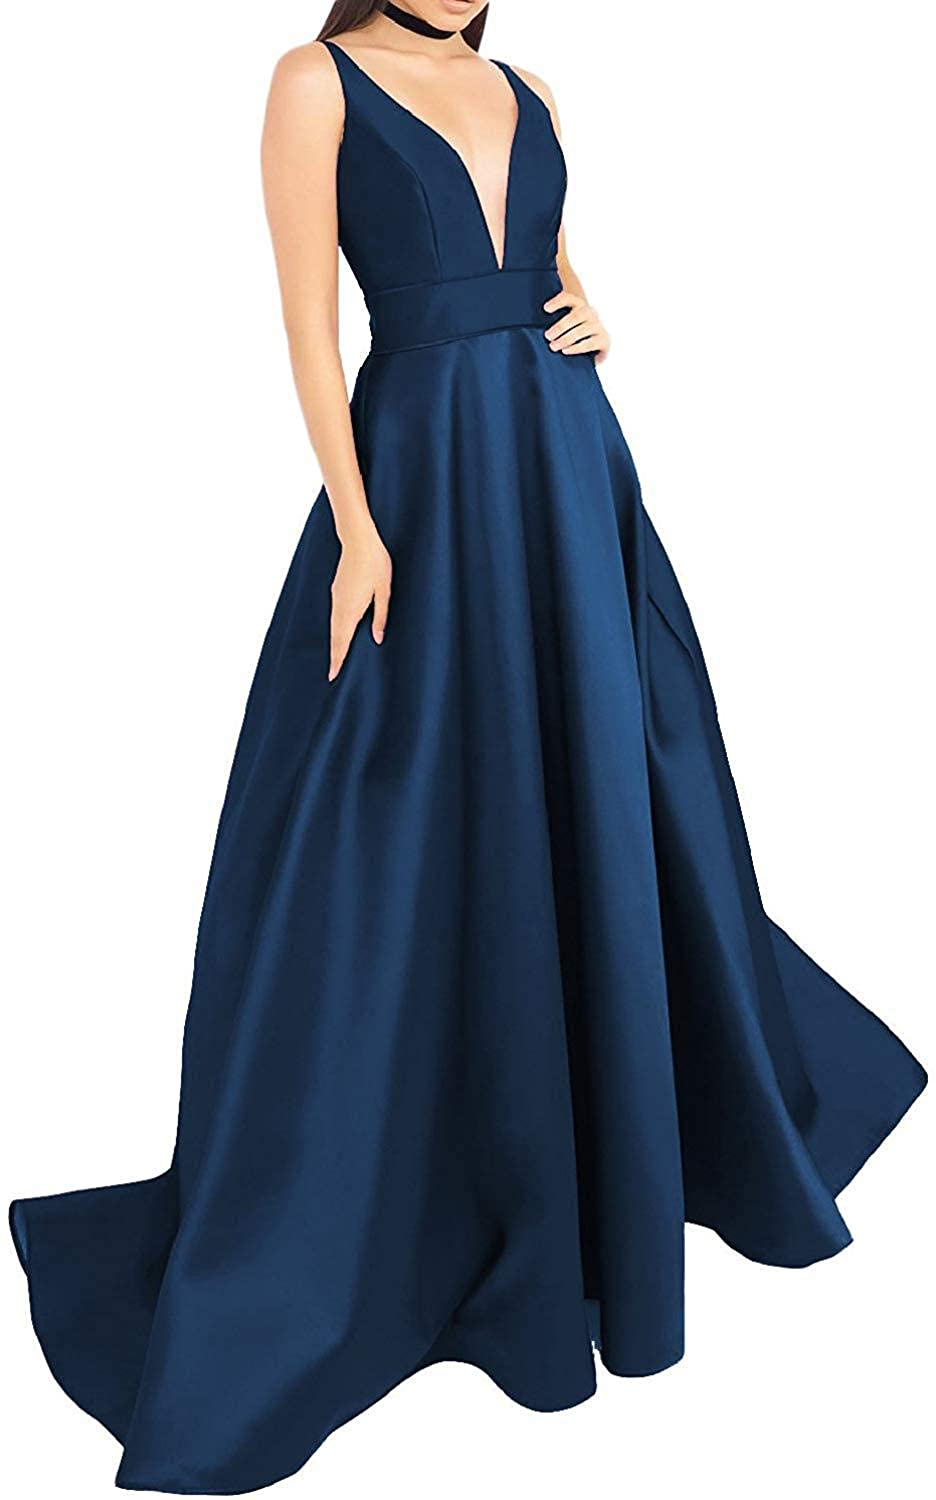 Navy bluee EverBeauty Womens VNeck Satin Prom Dresses 2019 Long Sleeveless Aline Evening Formal Ball Gown with Pockets